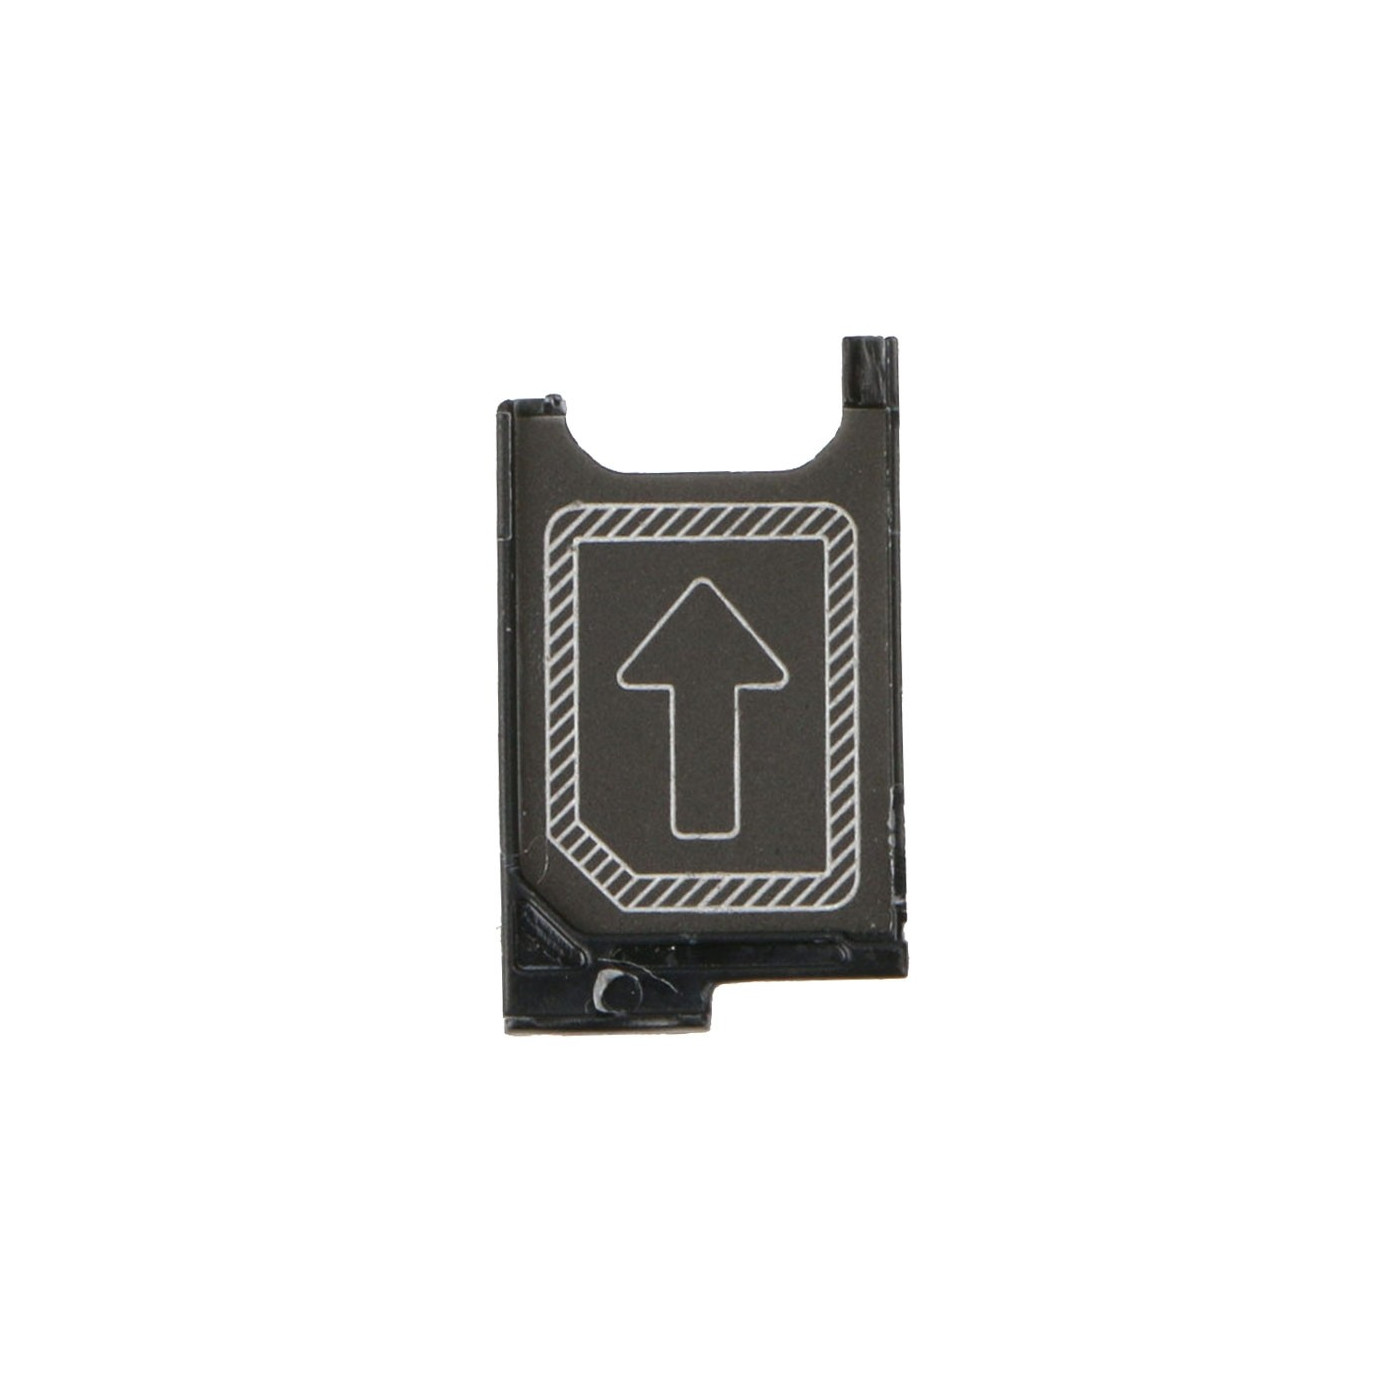 Porta sim card slot for Sony Xperia Z3 cart slide